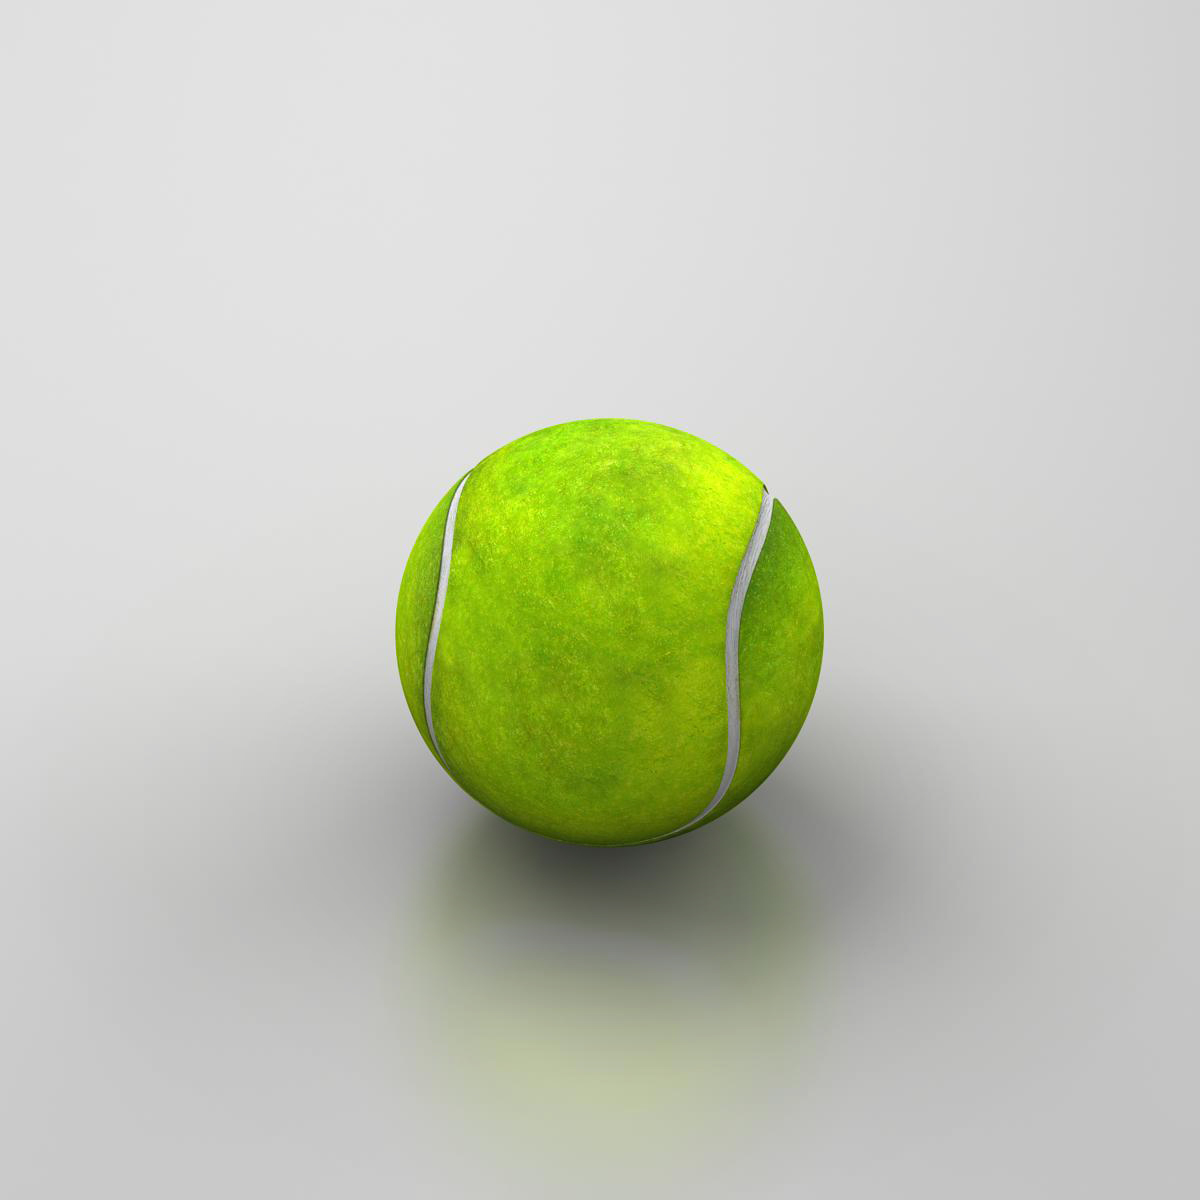 tennis ball lowpoly 3d model 3ds max fbx c4d ma mb obj 166102